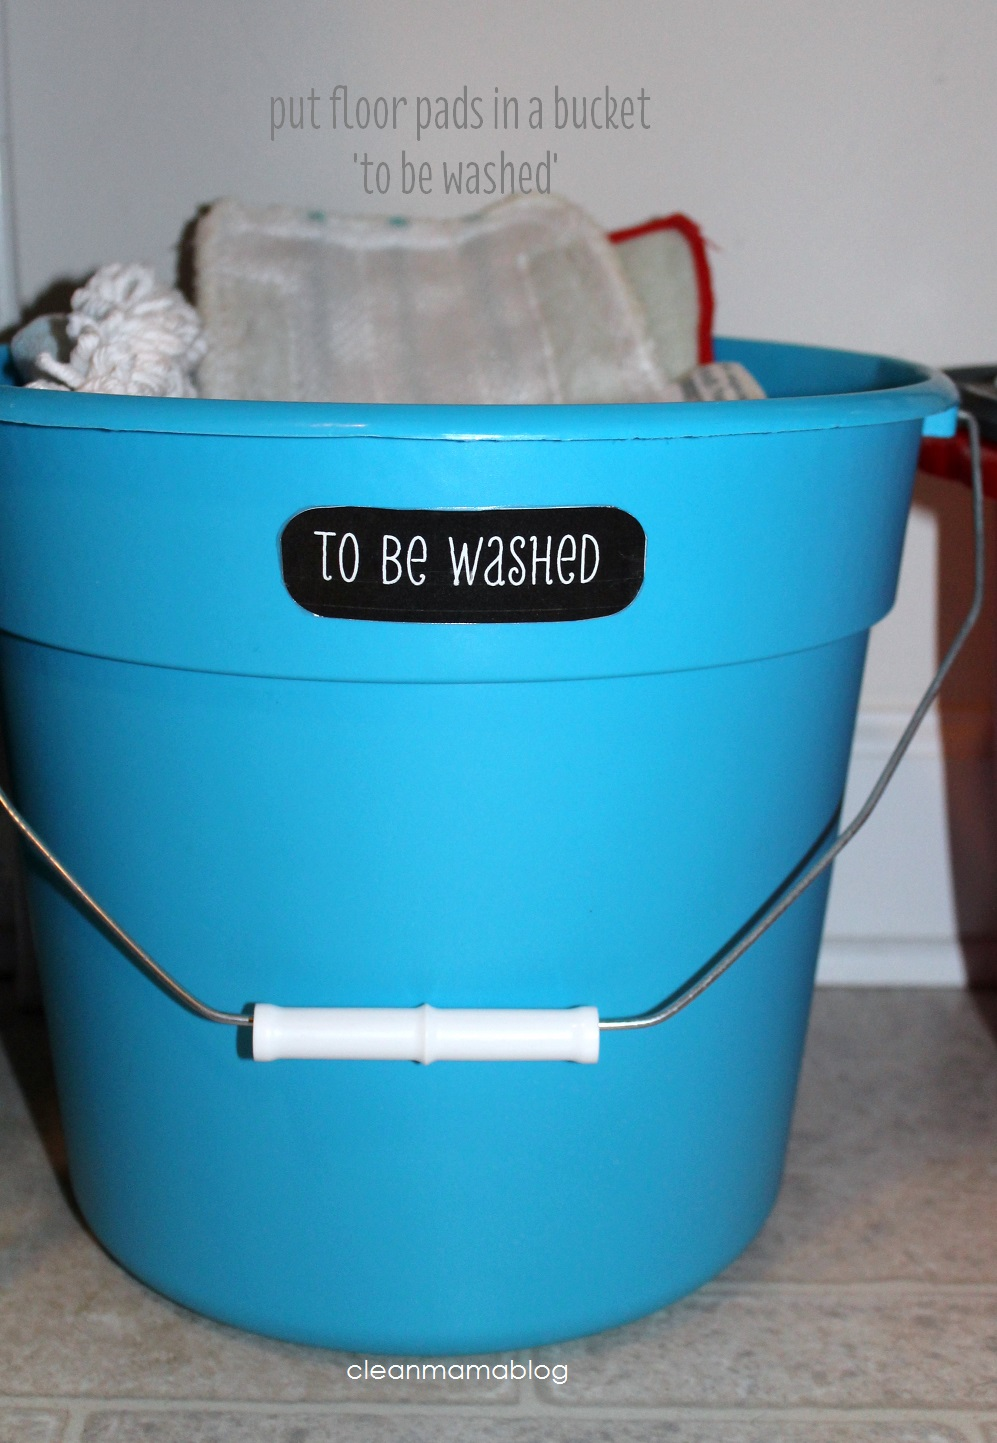 put floor pads in a bucket 'to be washed' - Clean Mama